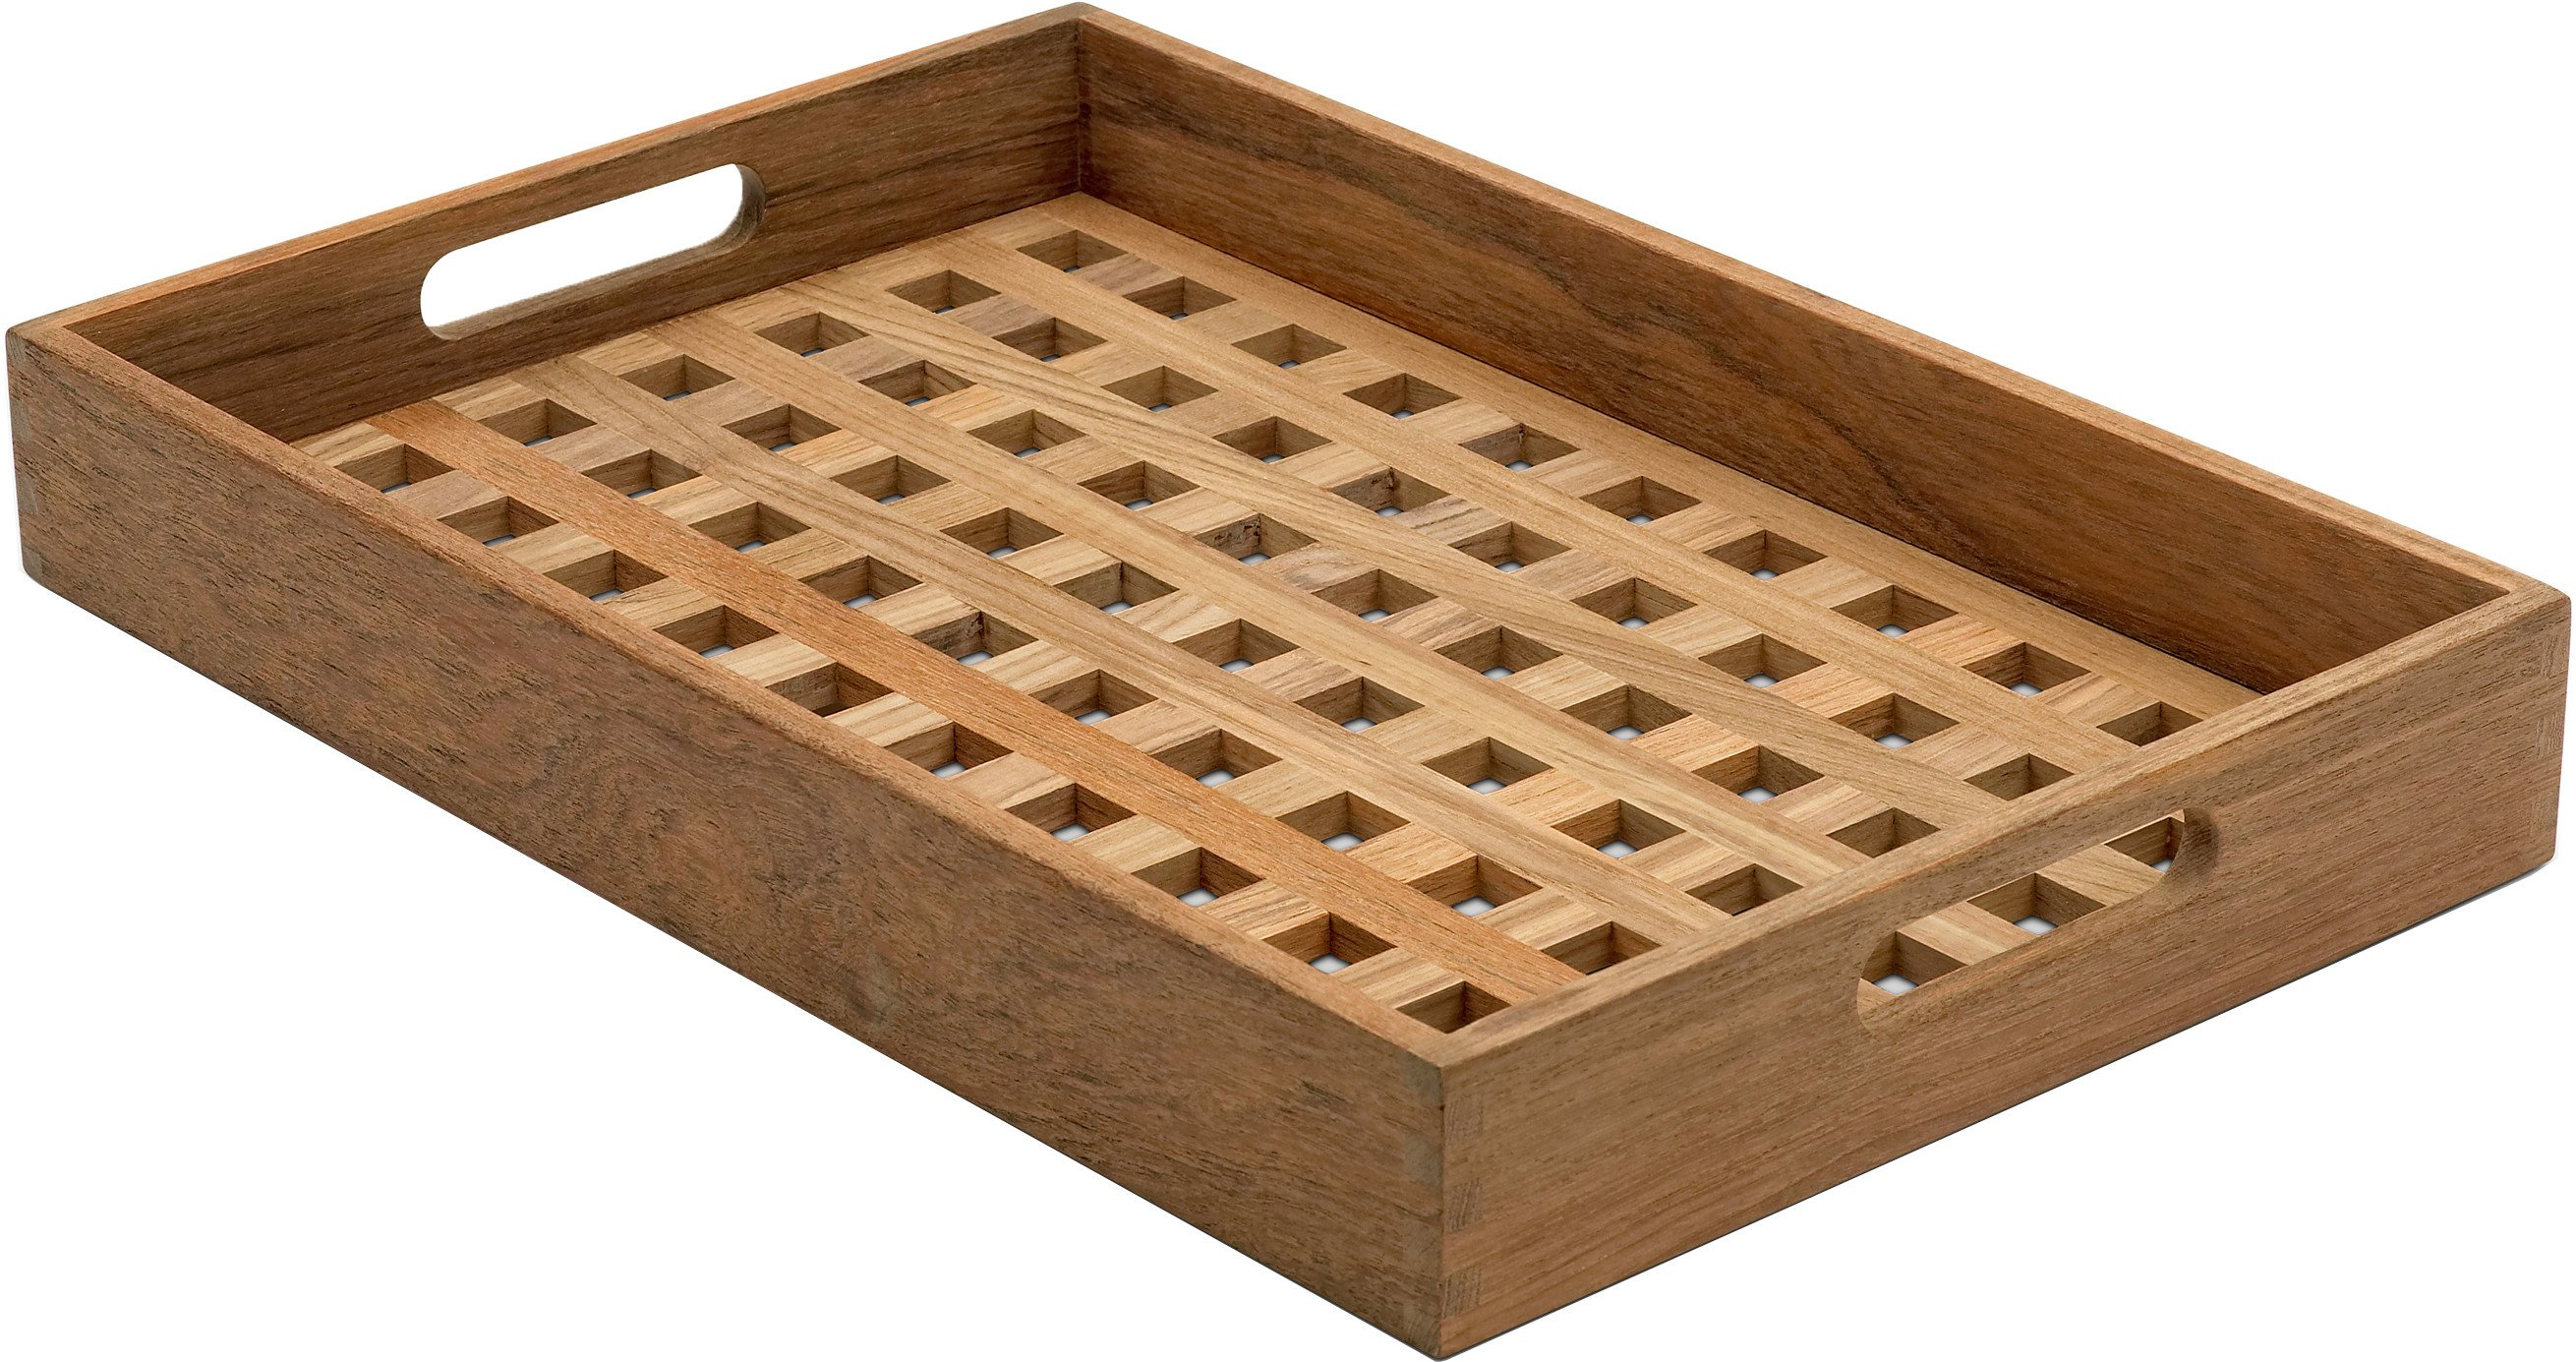 Fionia Tray 52 cm x 36 cm Teak by Skagerak design for Skagerak